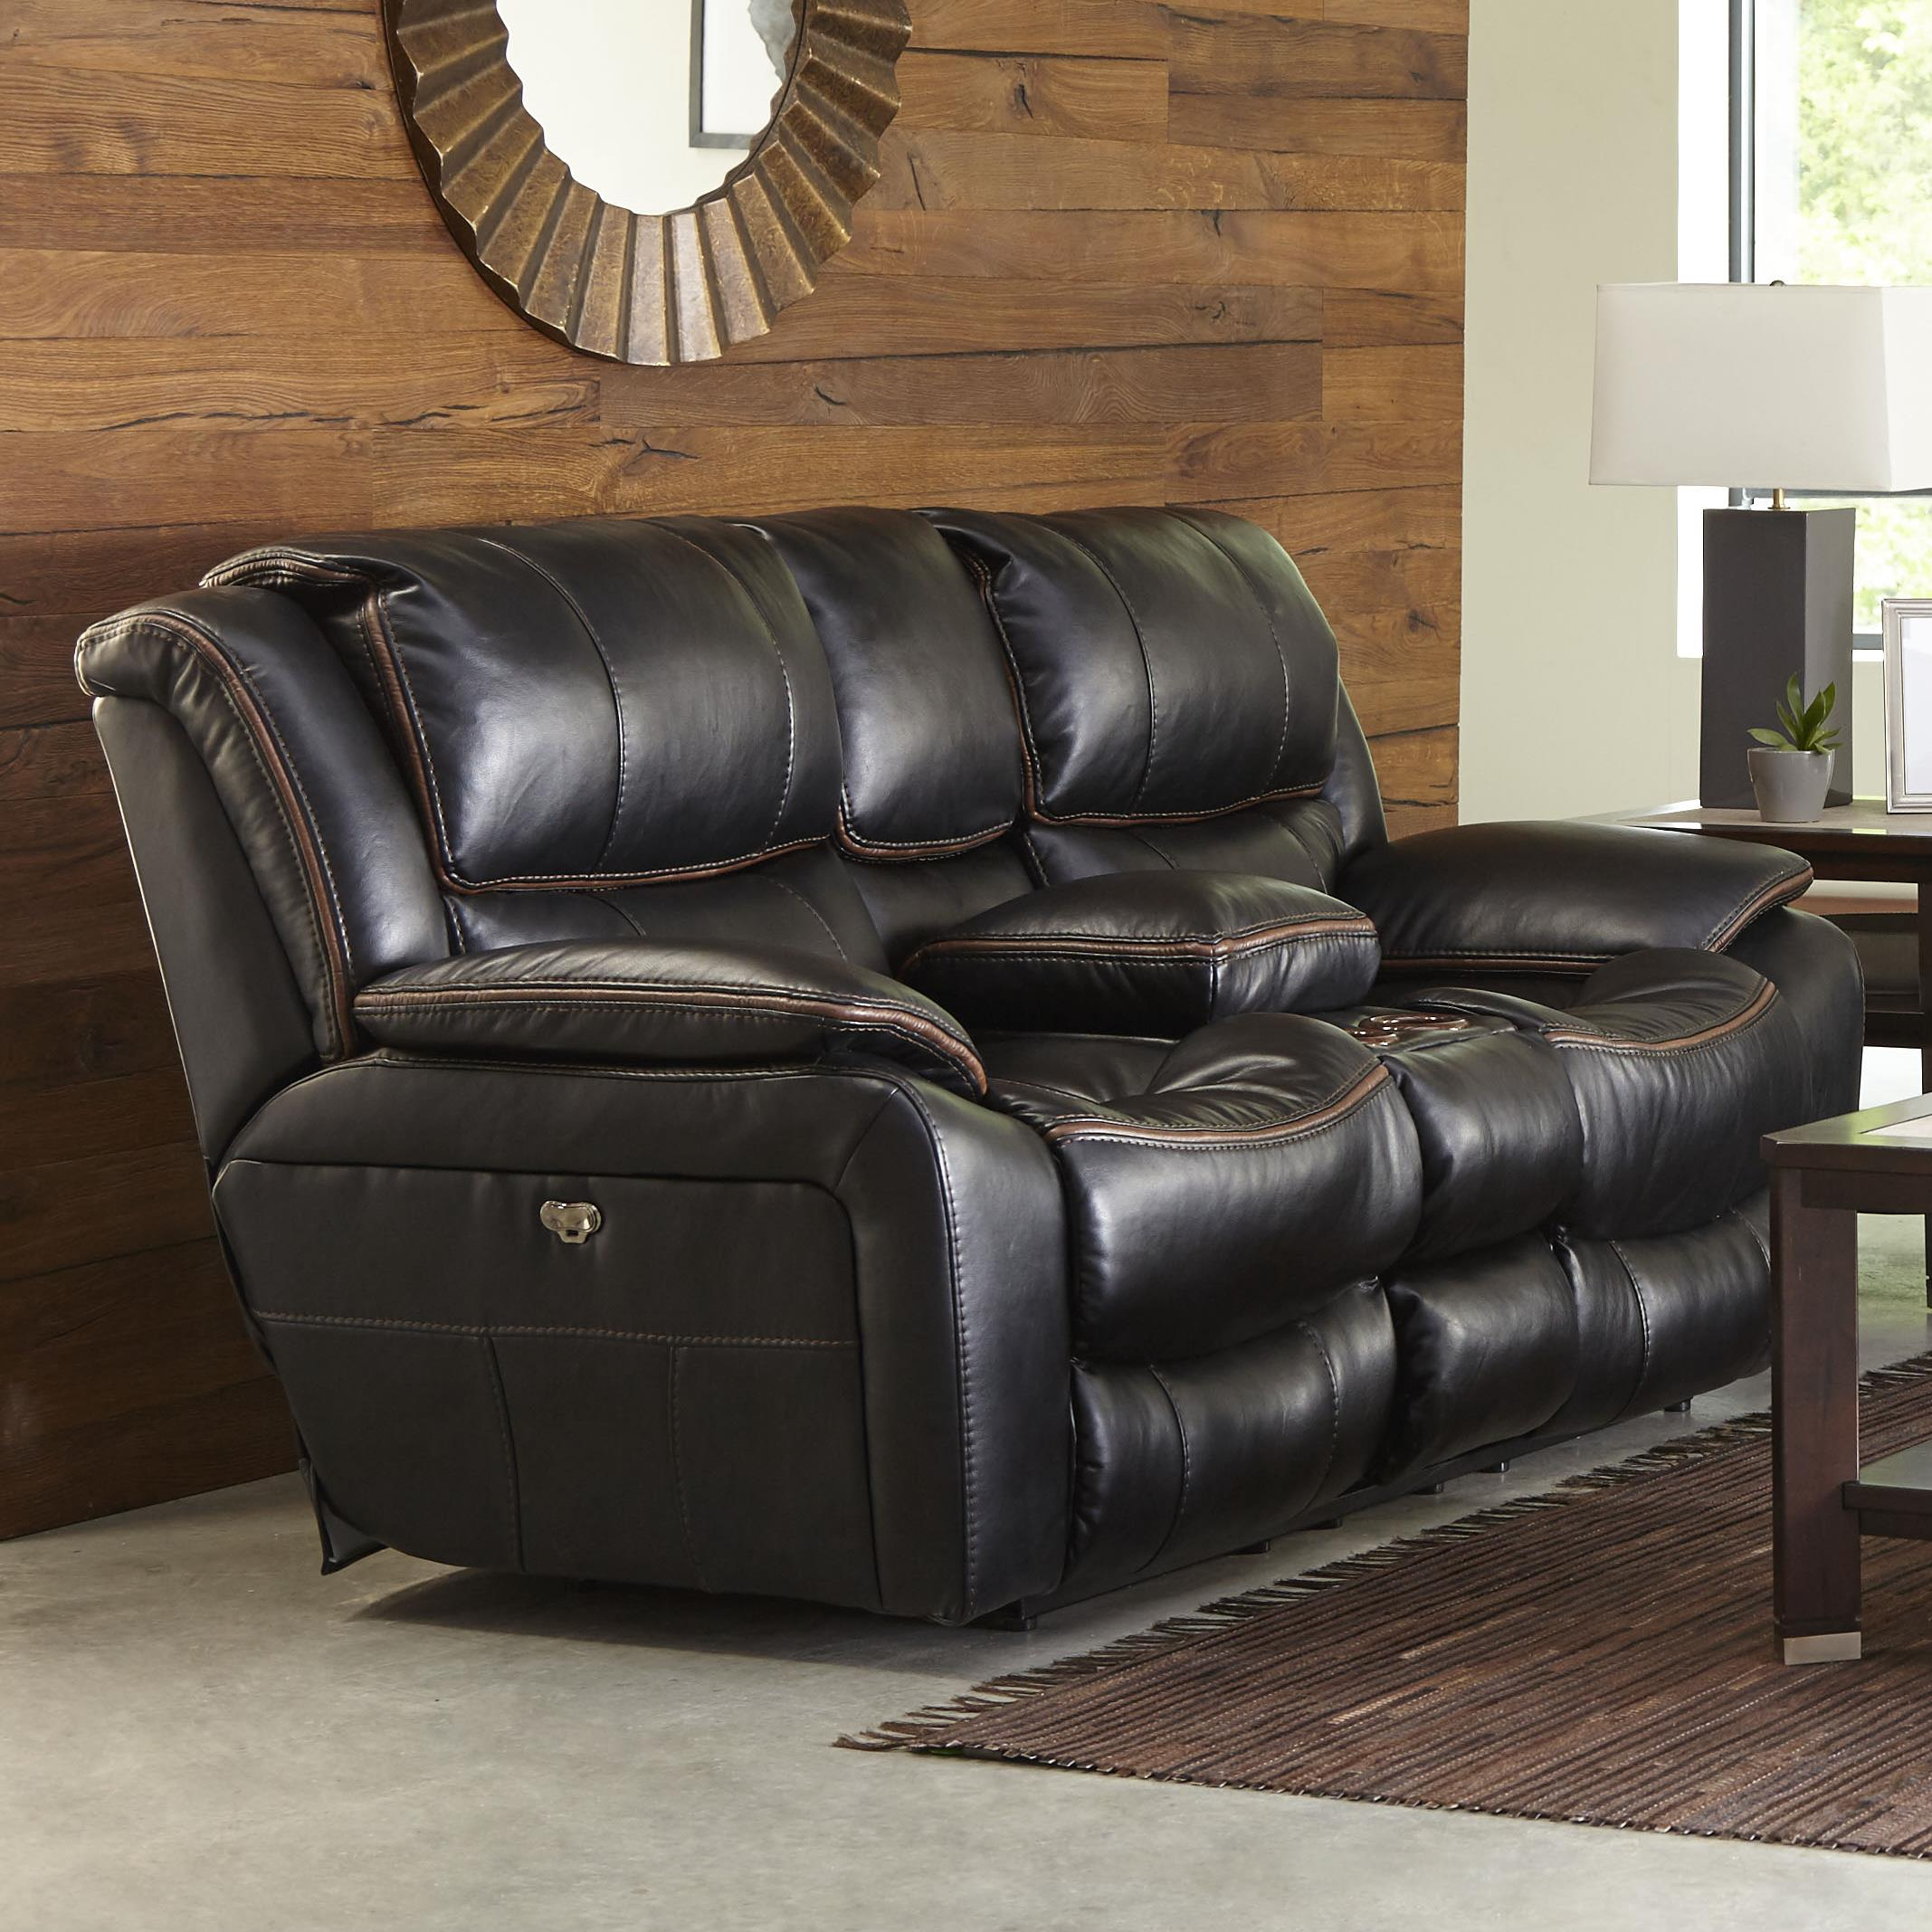 Power Reclining Loveseat with USB Port Cup Holders and Storage